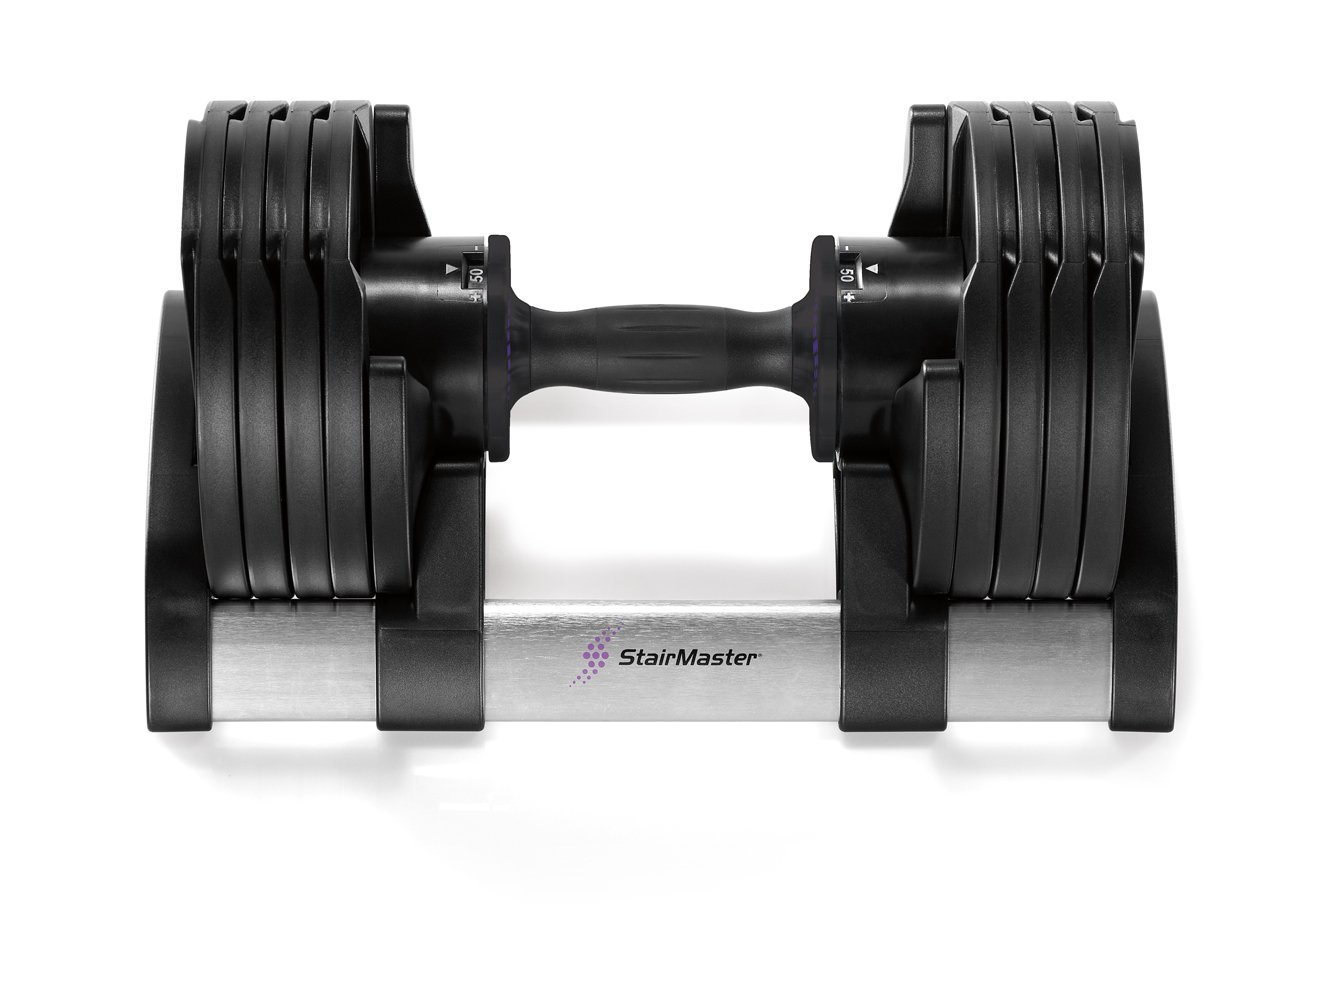 Top 10 Best Adjustable Dumbbells Review – Buyer's Guide